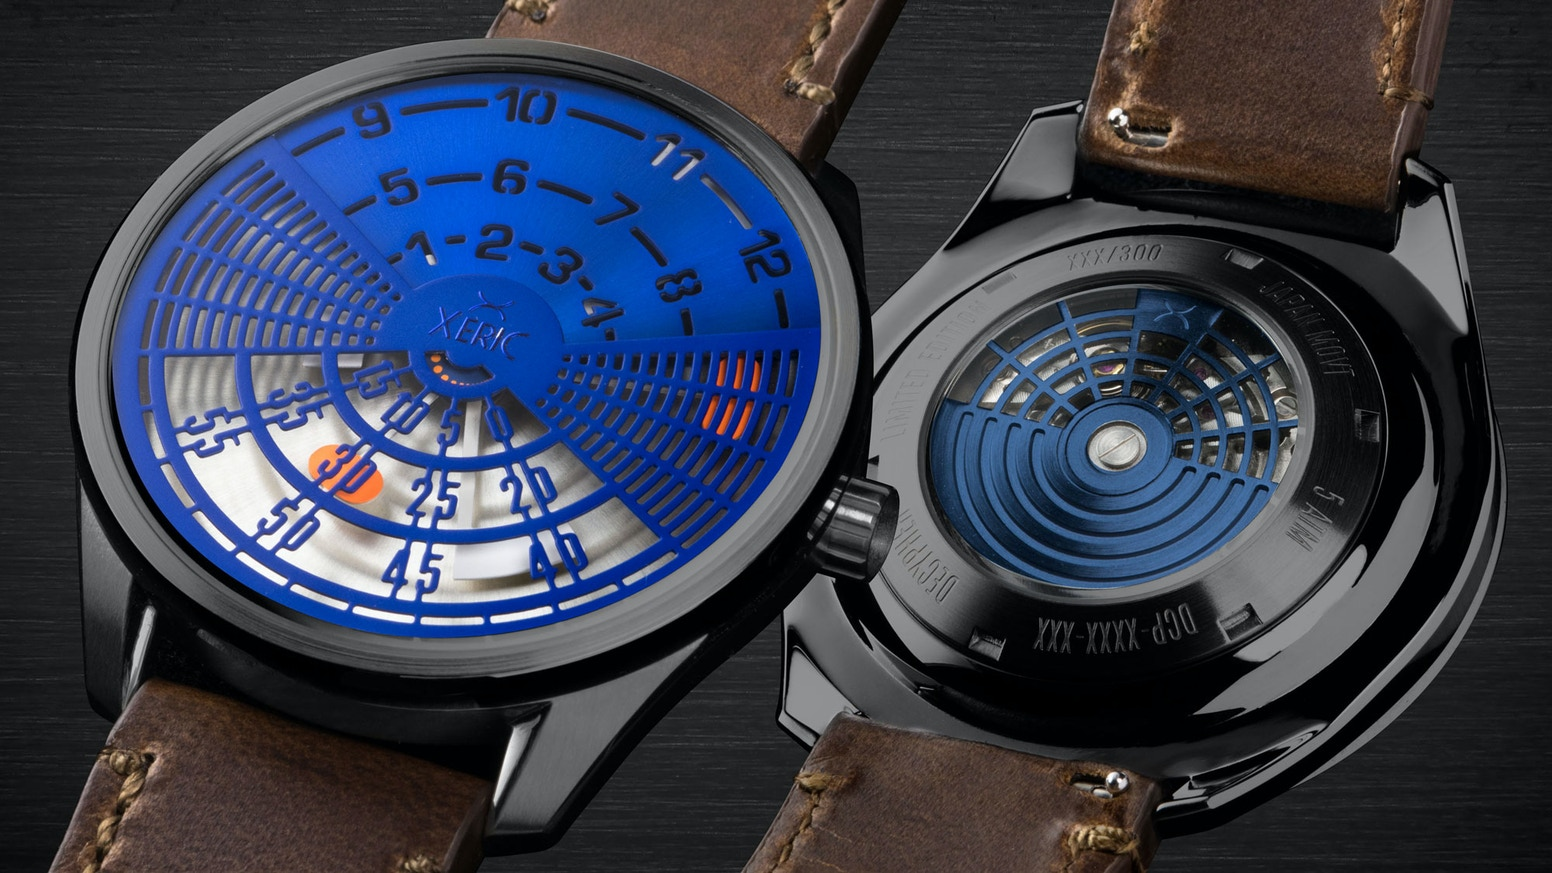 Our rarest collection yet with innovative time displays and tritium gas tubes. The limited edition Cypher & Decypher automatic watches.